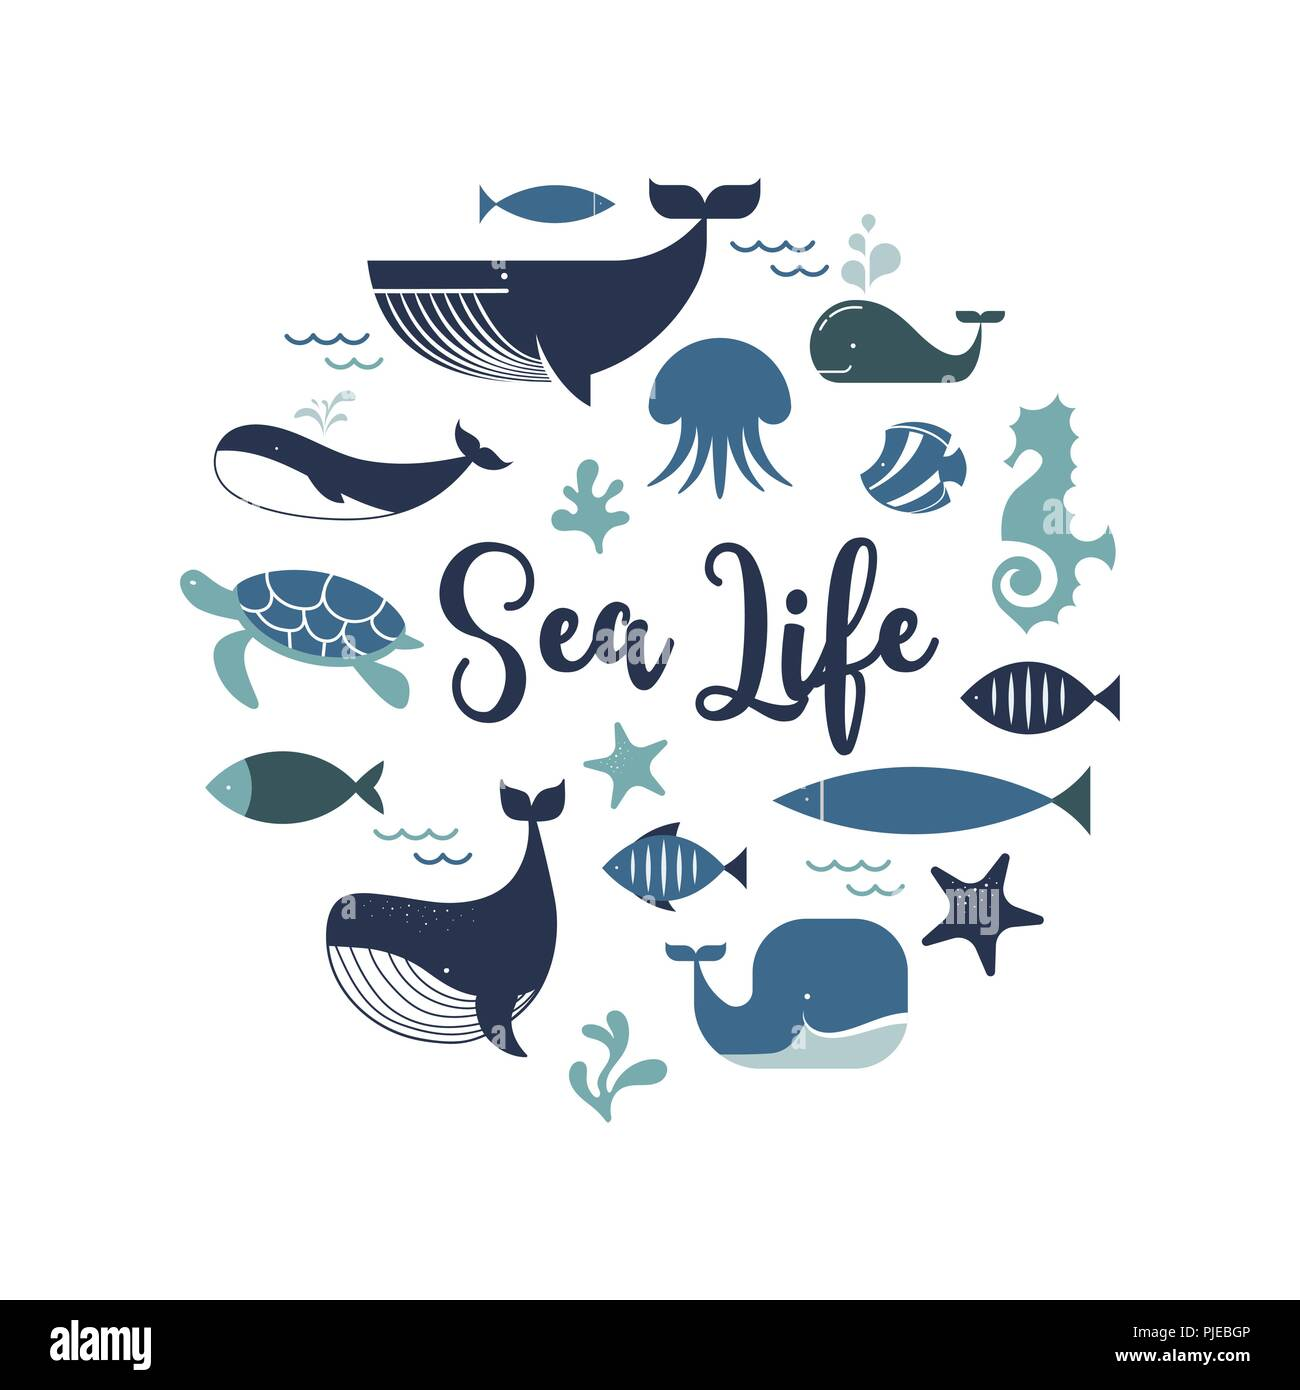 Sea life, whales, dolphins icons and illustrations, poster design - Stock Image